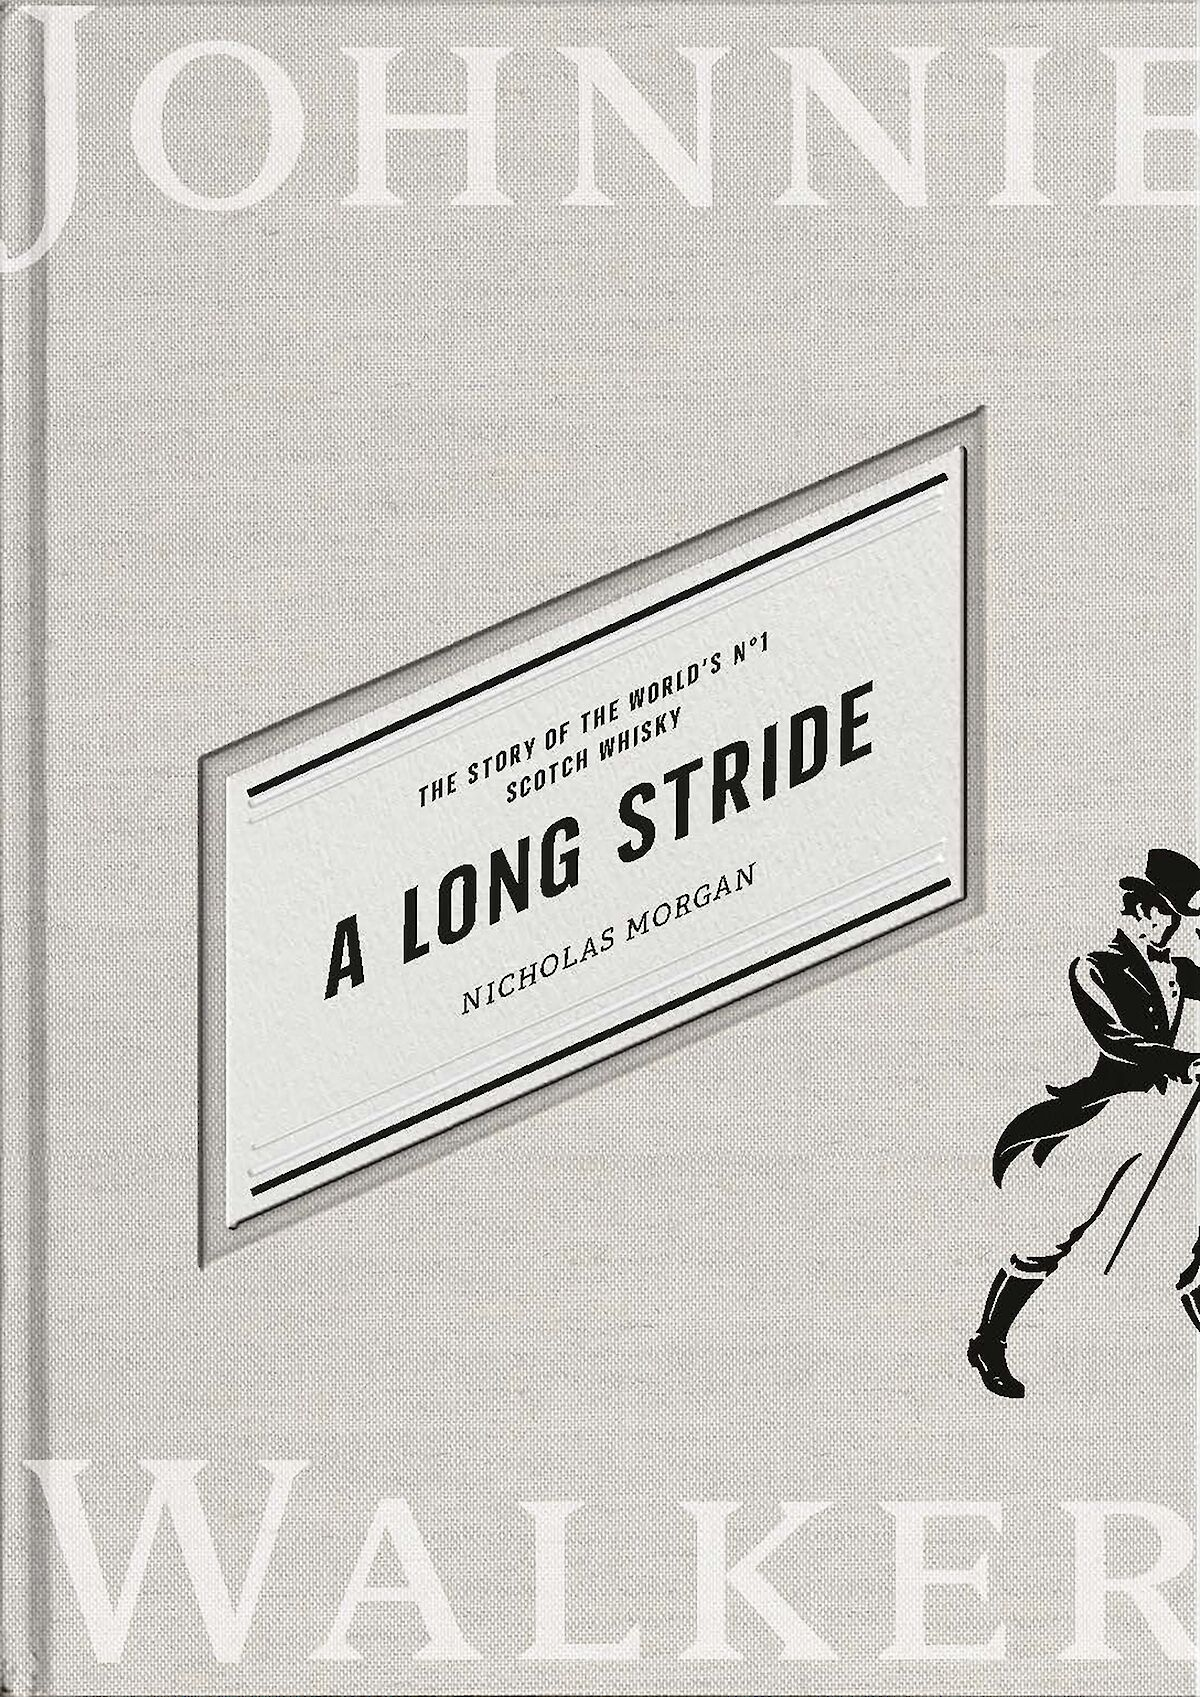 A Long Stride - The Story of the World's No. 1 Scotch Whisky